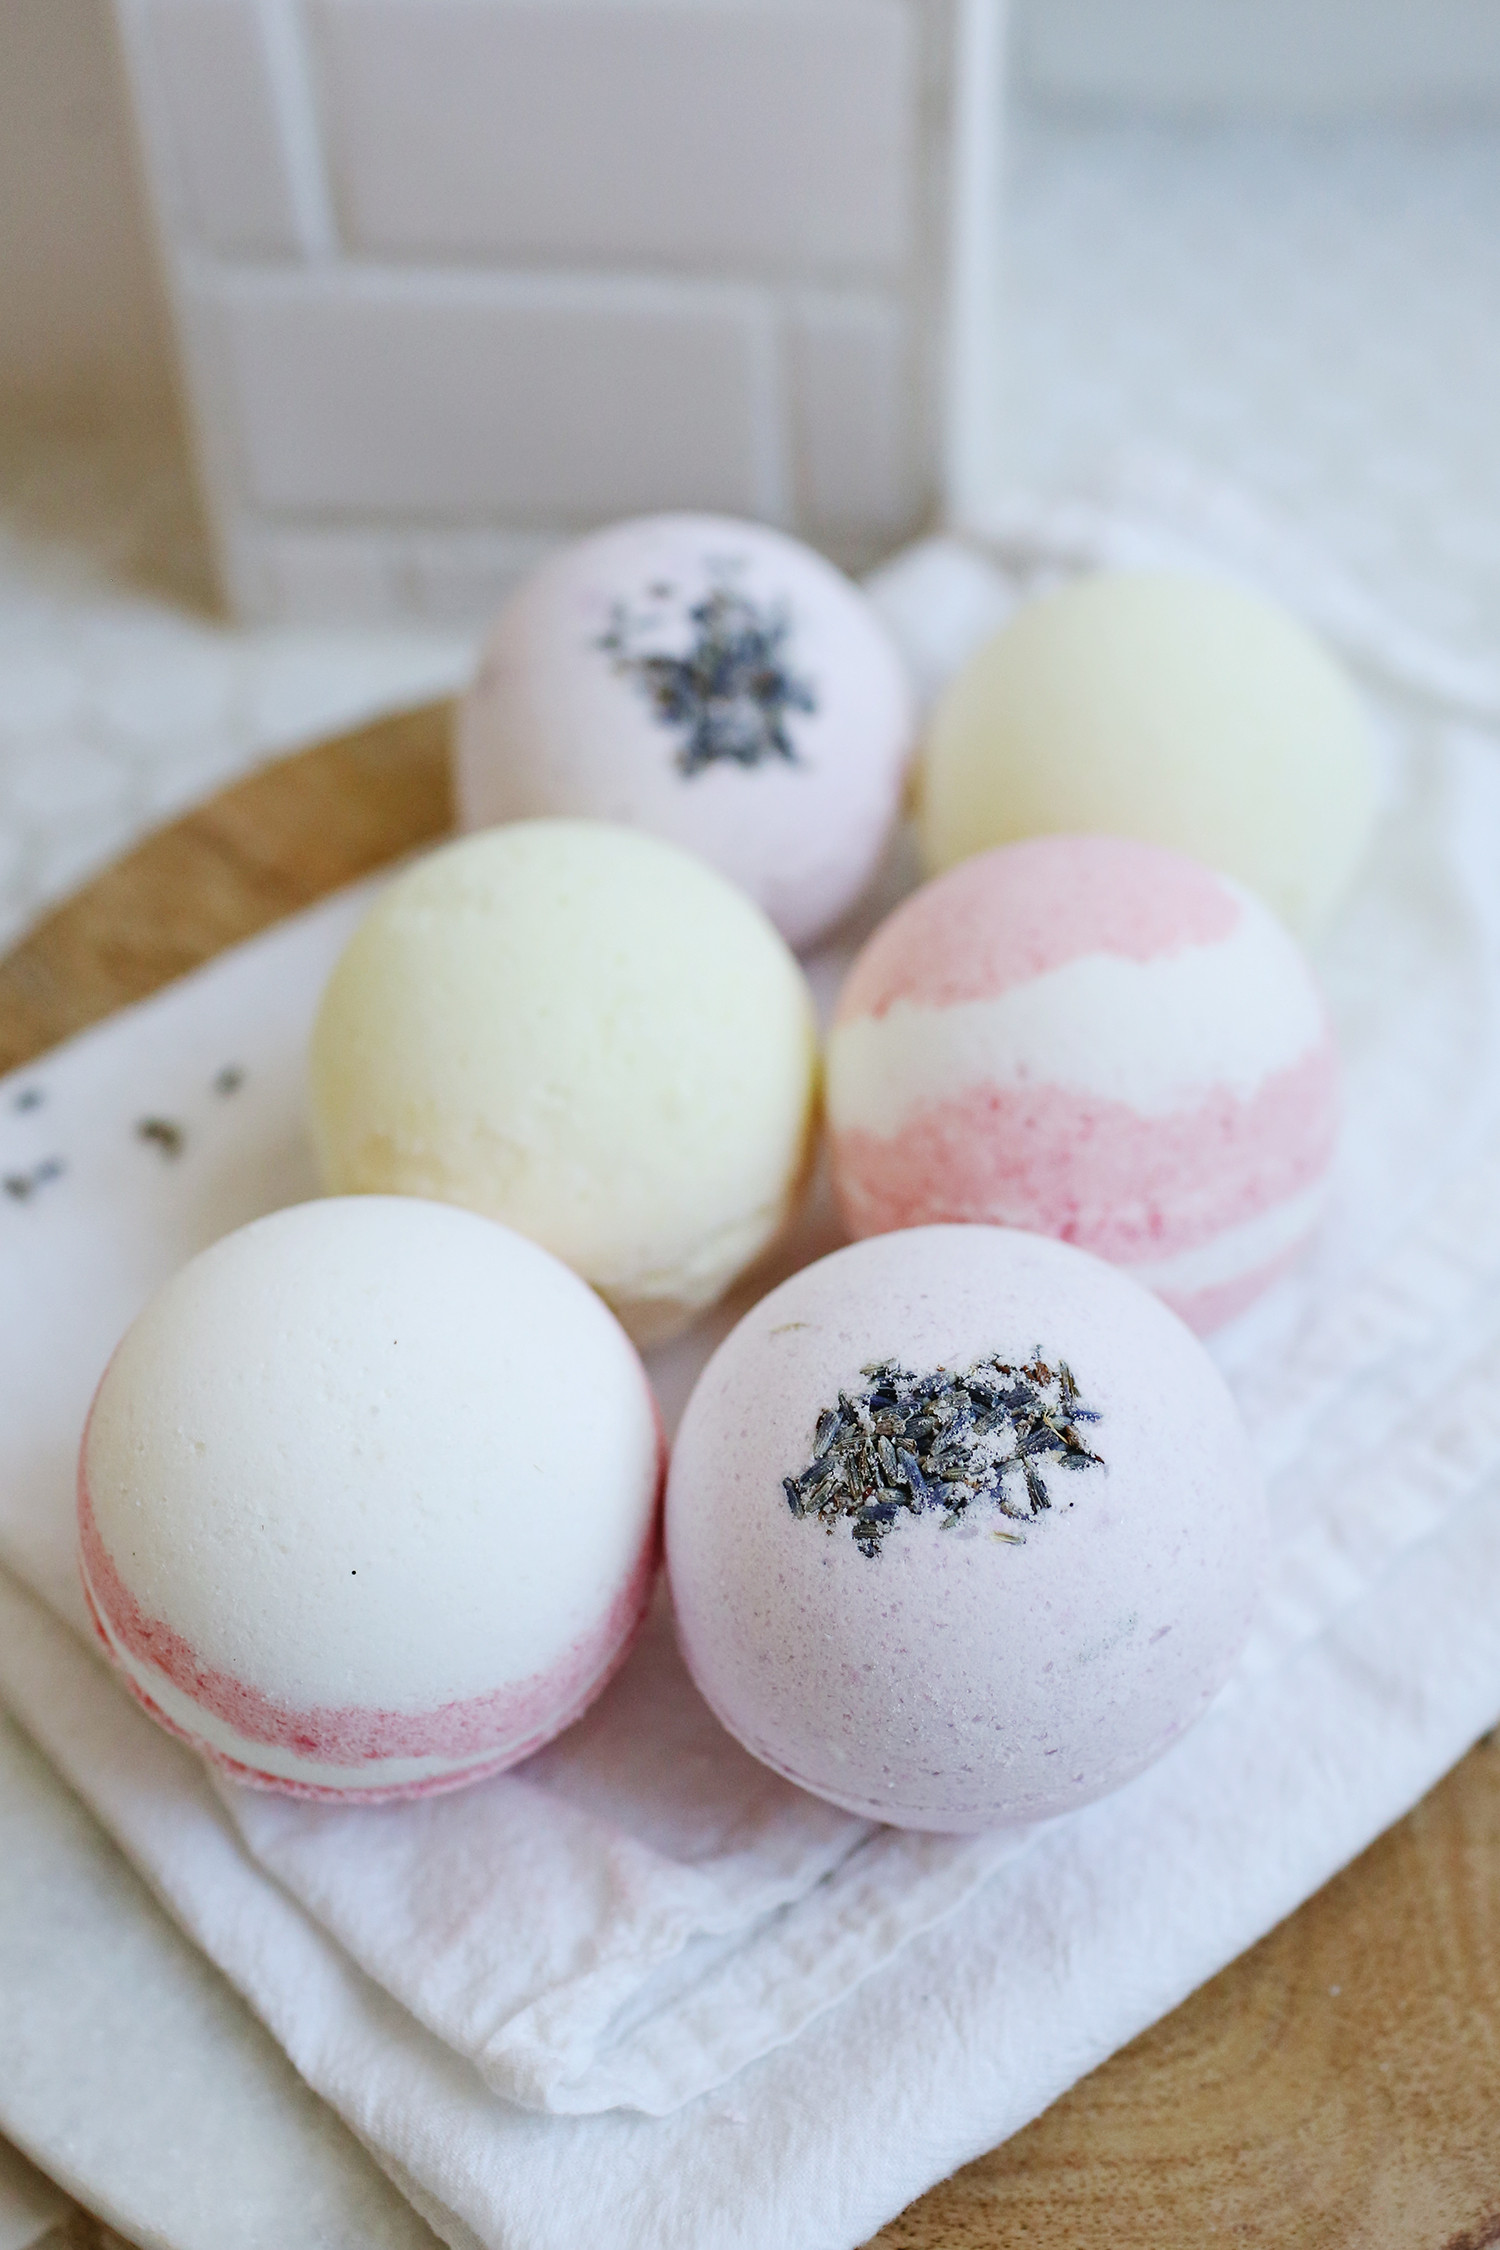 Best ideas about DIY Bath Bomb . Save or Pin Homemade Bath Bombs A Beautiful Mess Now.